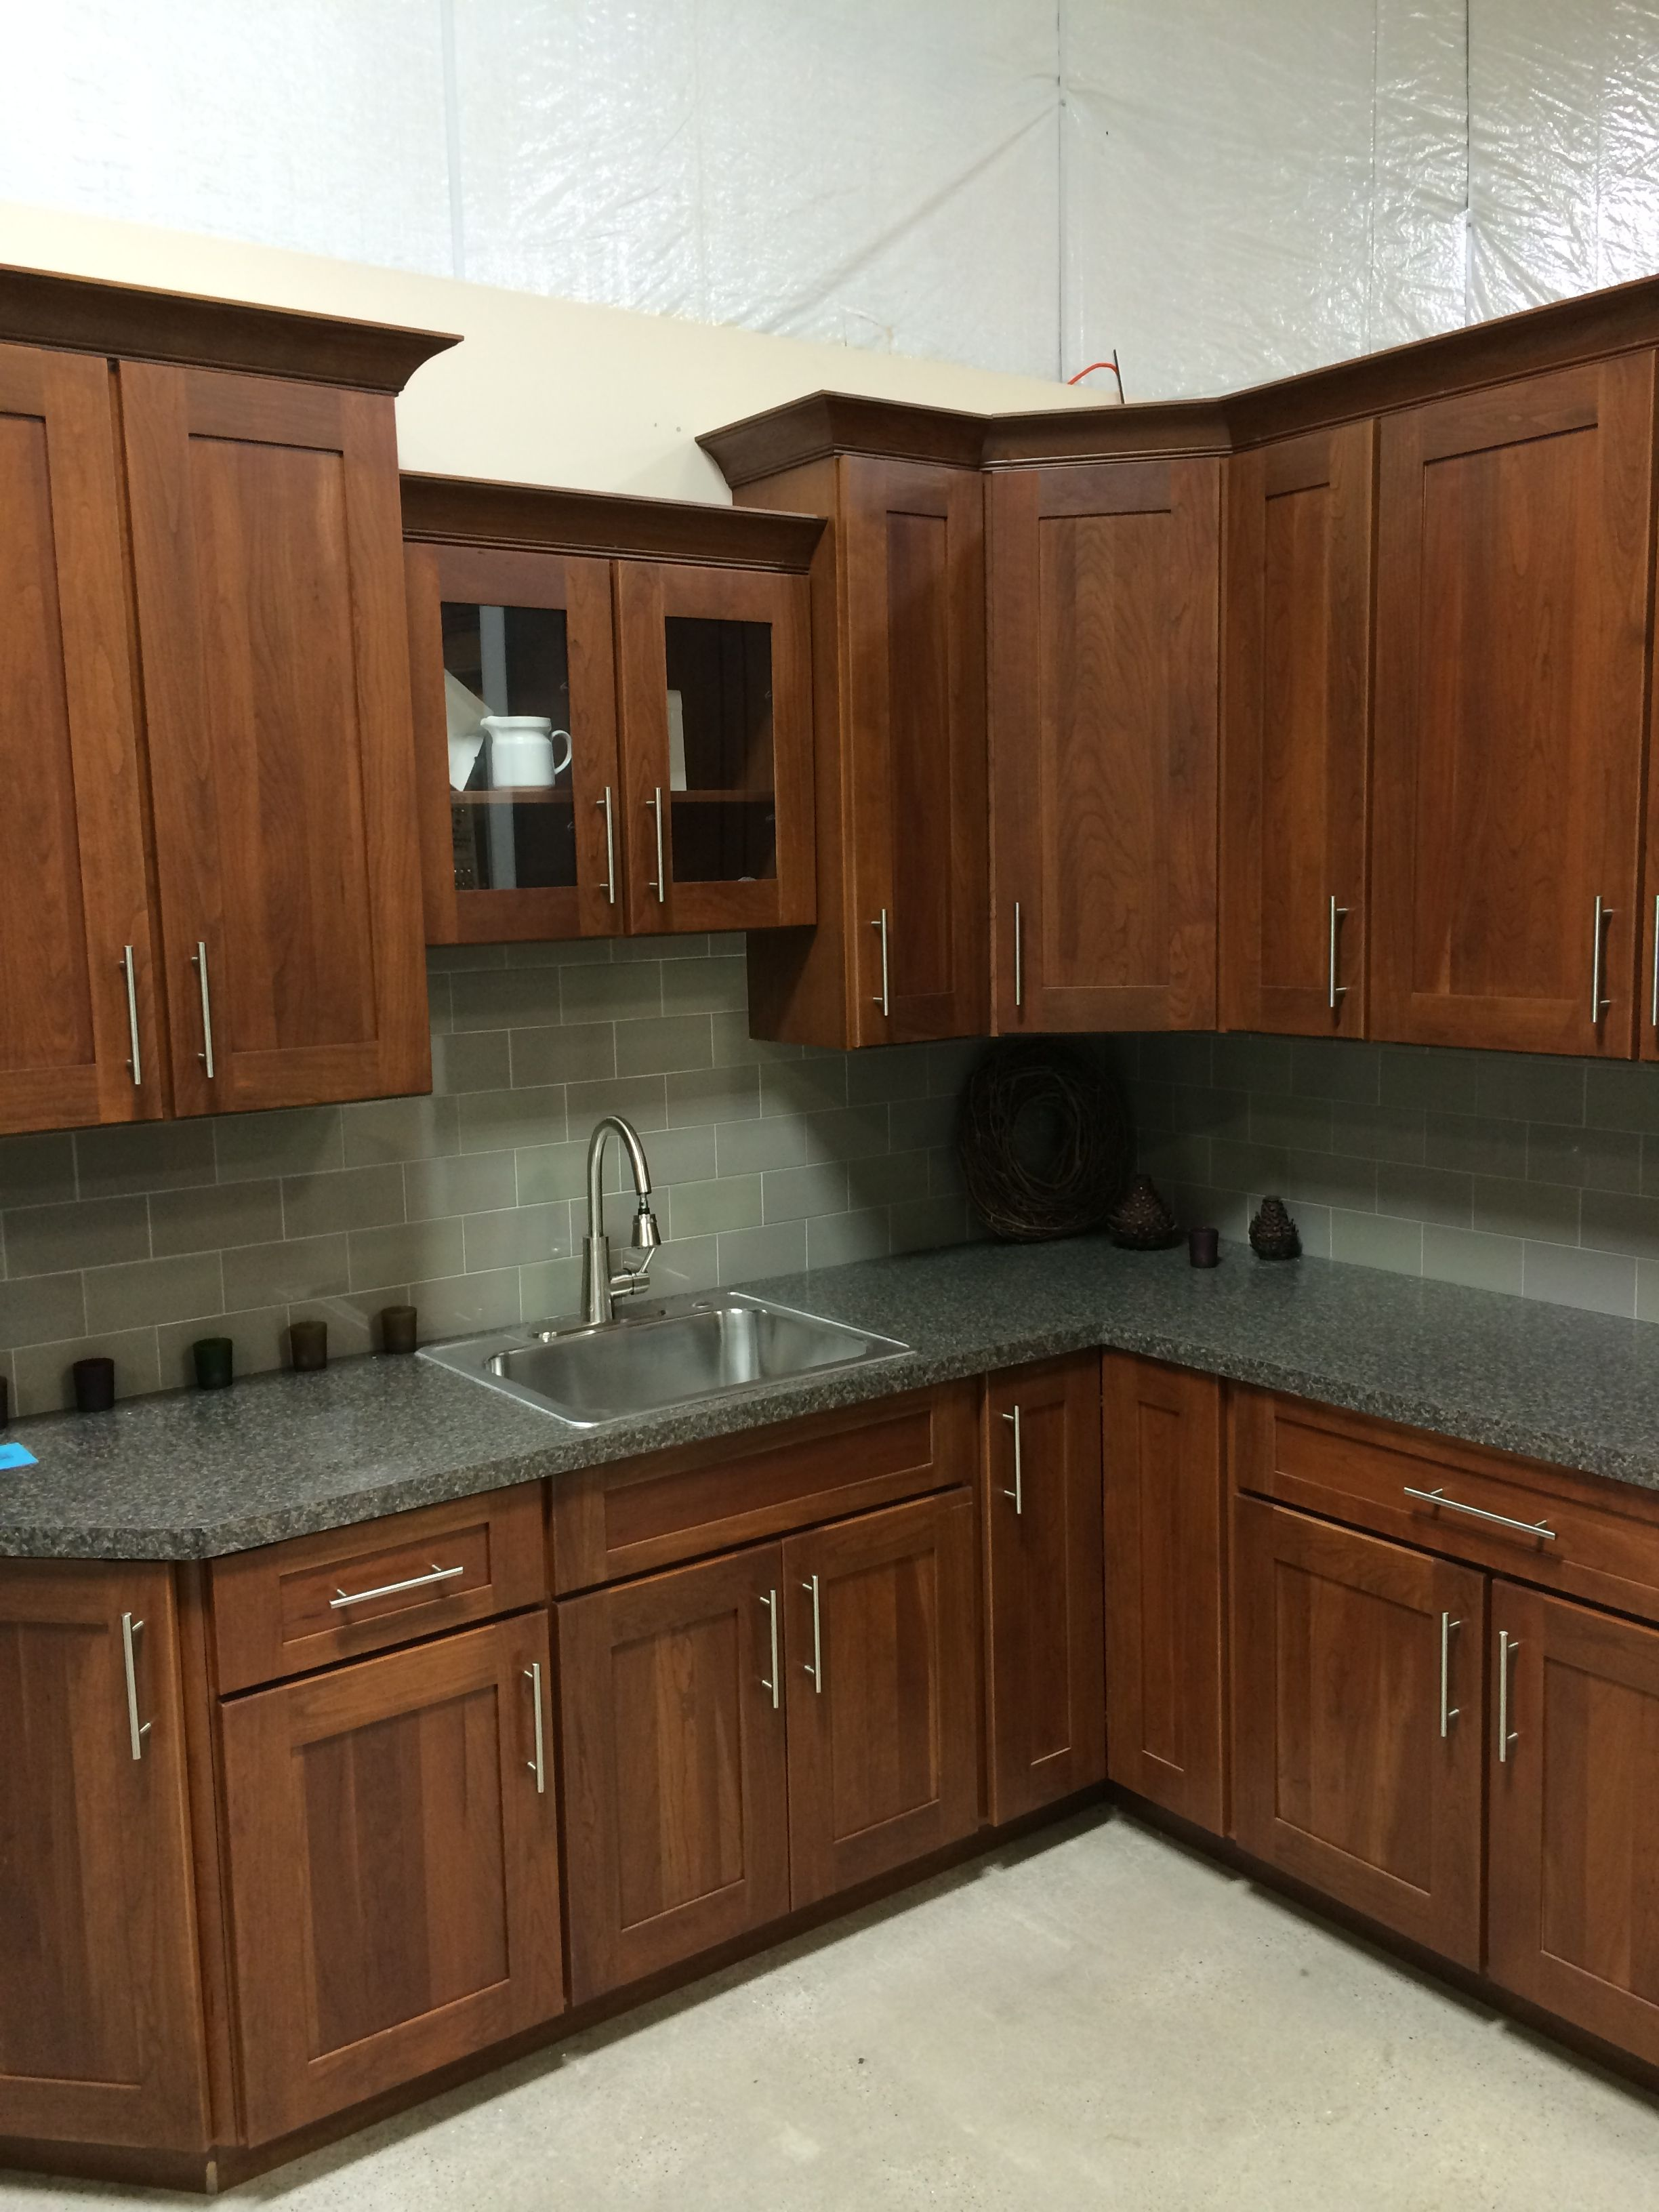 $5,000 Kitchen Remodel   Affordable Kitchens, Baths And Appliances  Http://www.